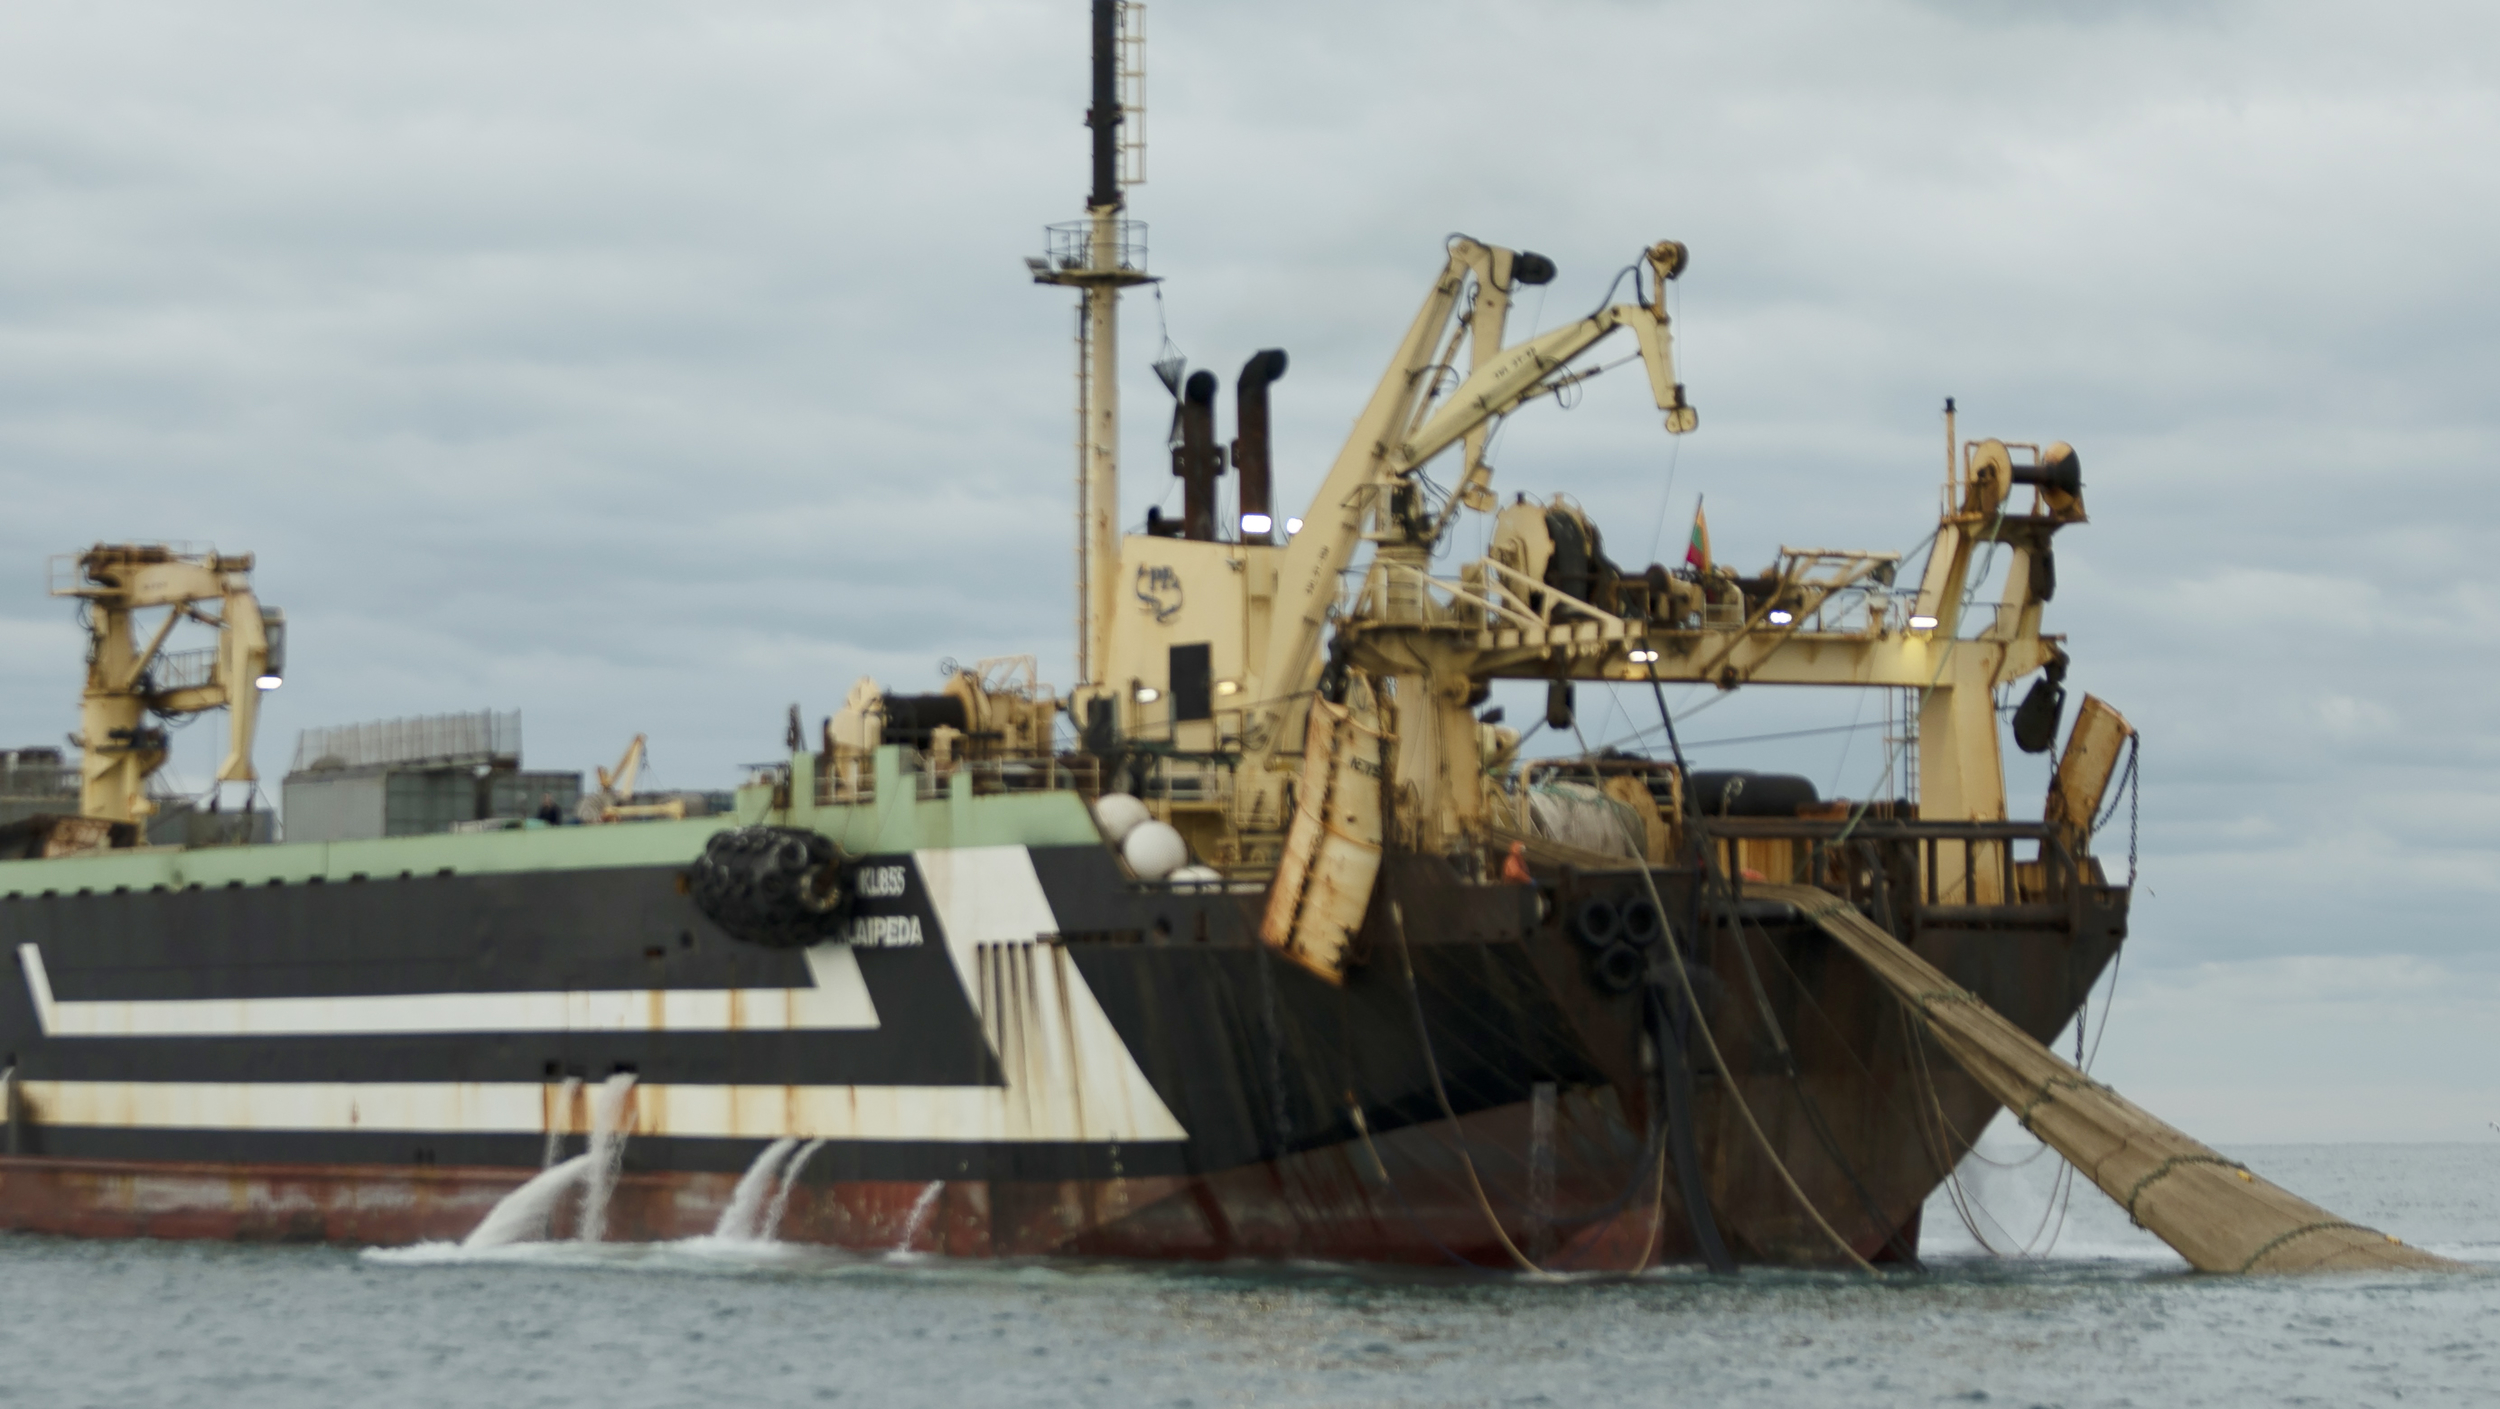 A huge fishing ship pulls in its nets using a rear-mounted winch